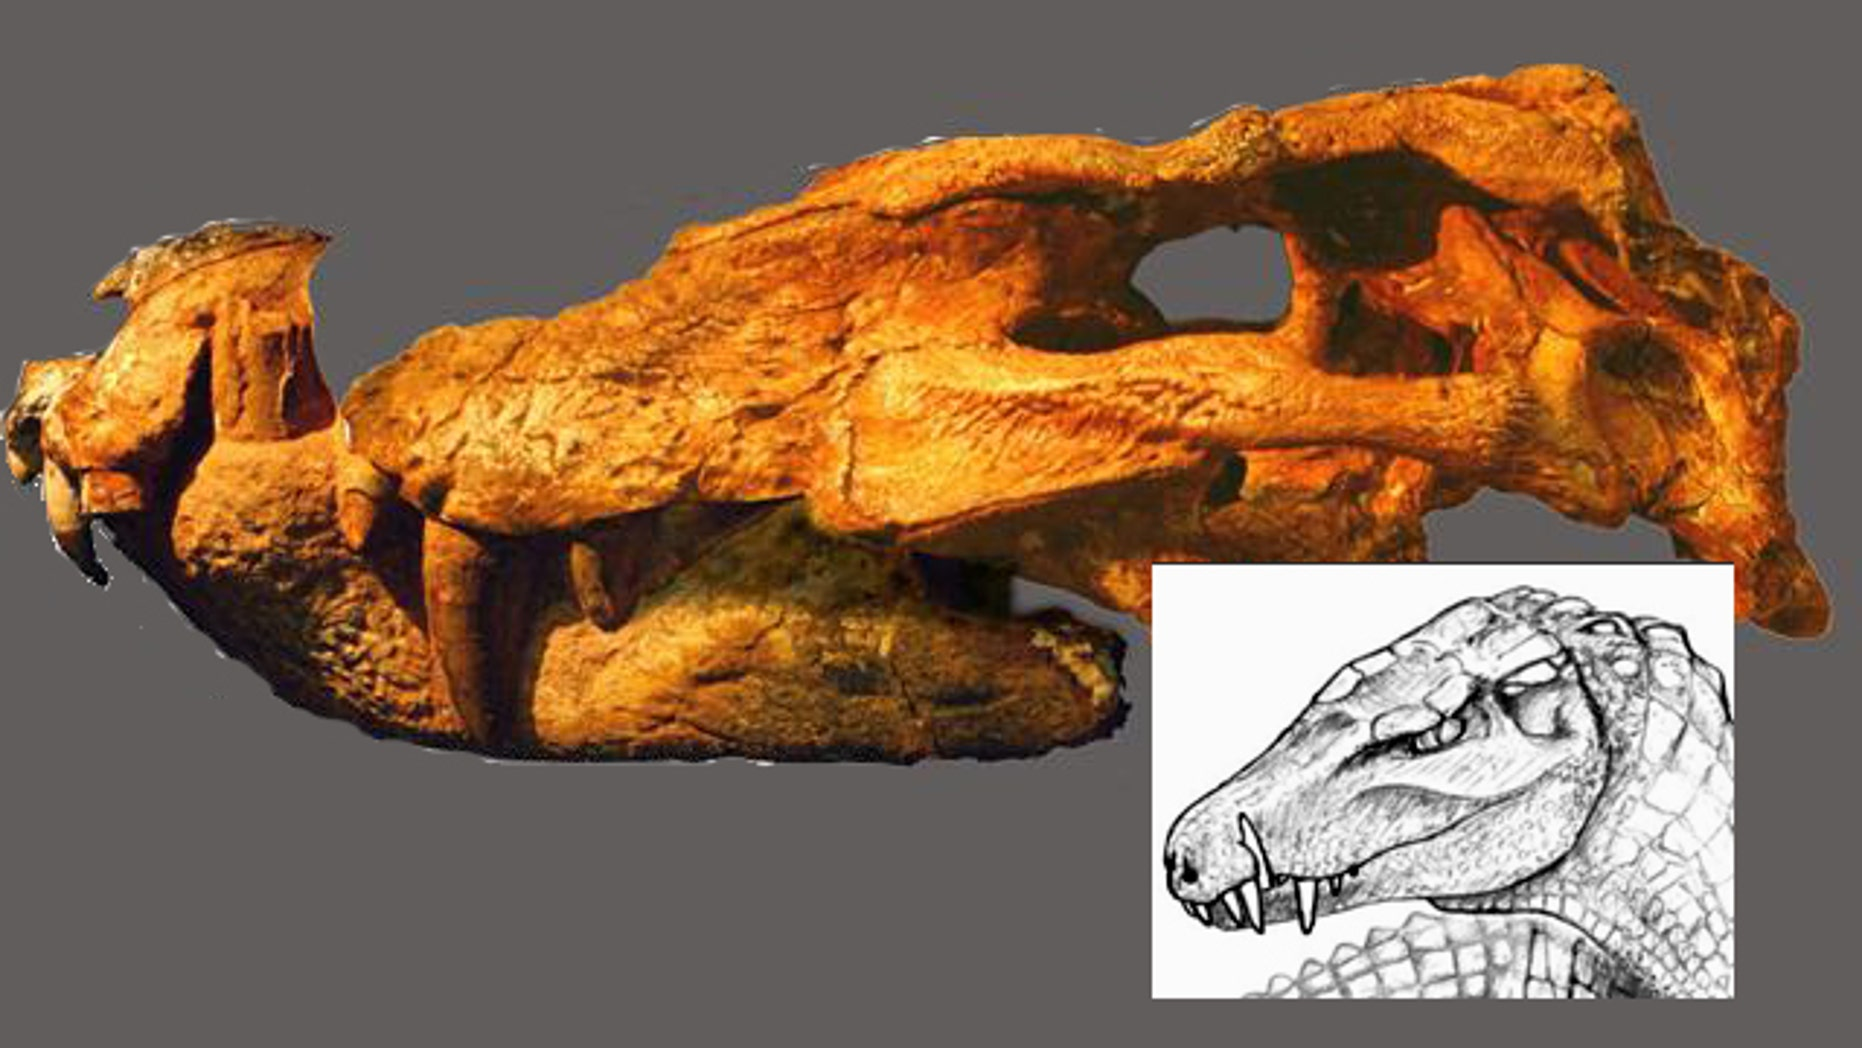 The fossil skull of the crocodilian's head might have looked like the inset drawing in real life -- many millions of years ago.